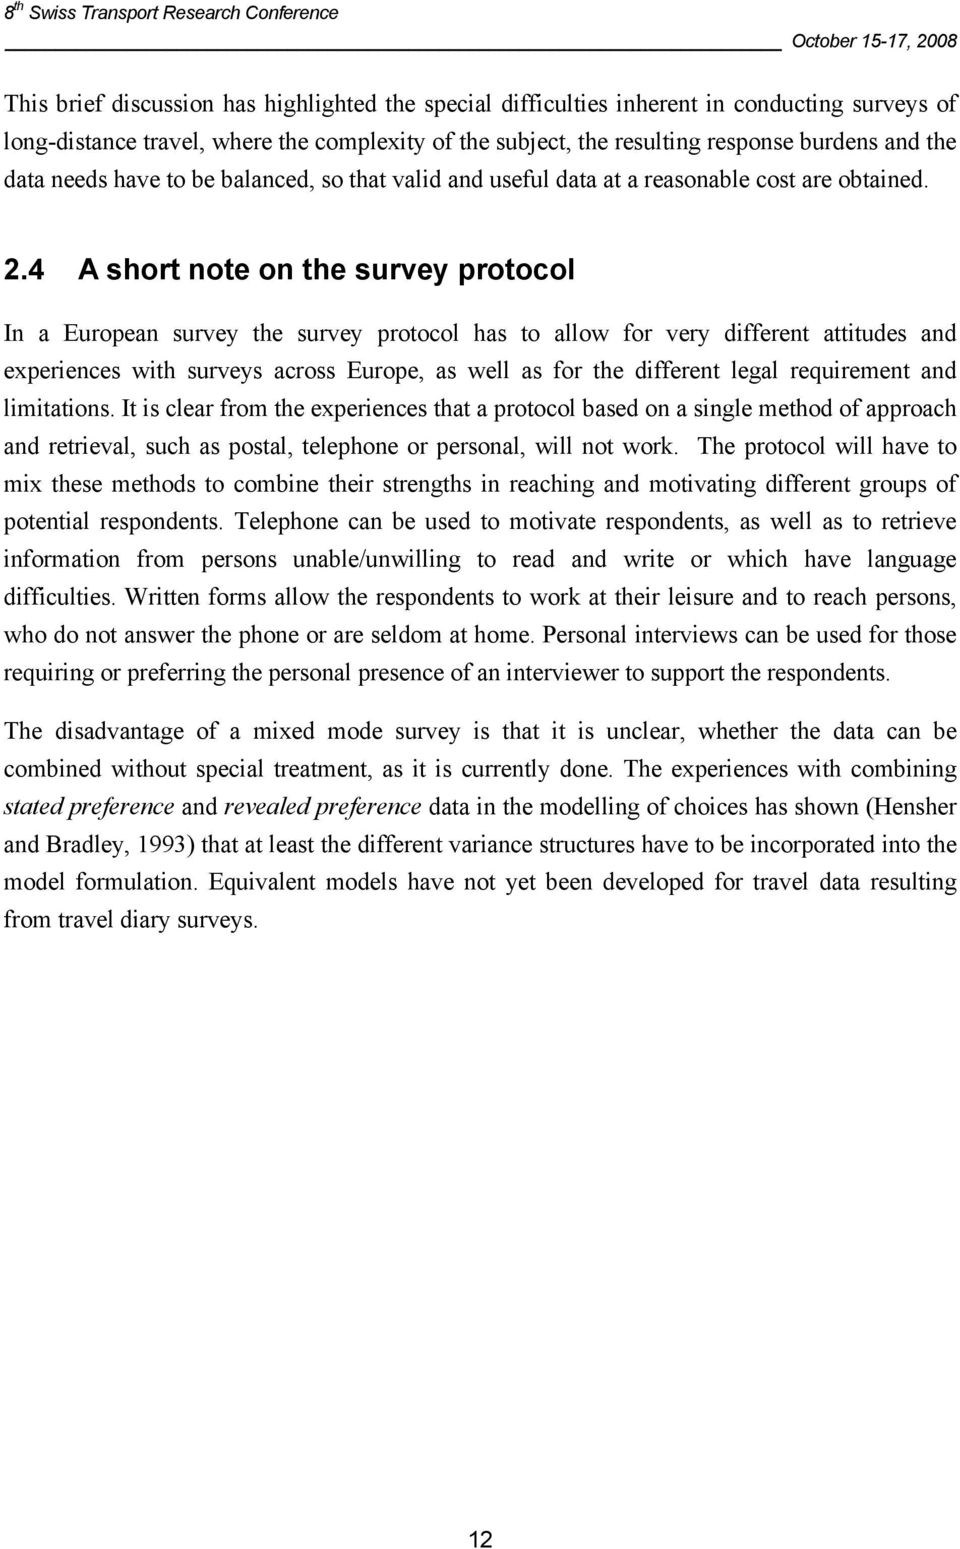 4 A short note on the survey protocol In a European survey the survey protocol has to allow for very different attitudes and experiences with surveys across Europe, as well as for the different legal